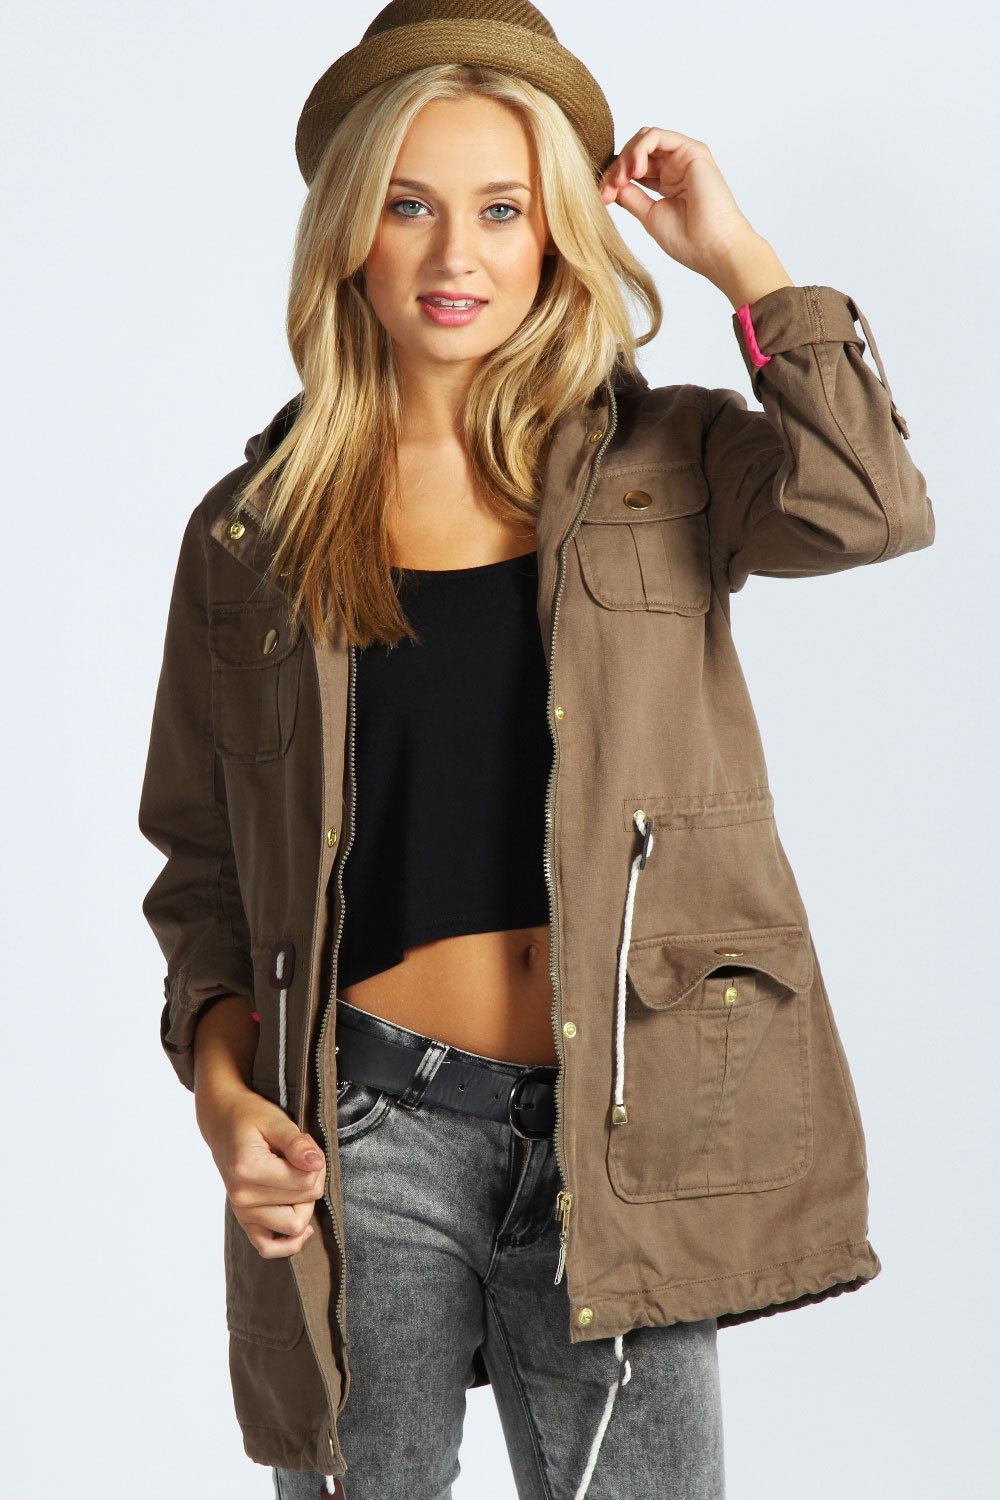 Brown ladies parka coat – Your jacket photo blog